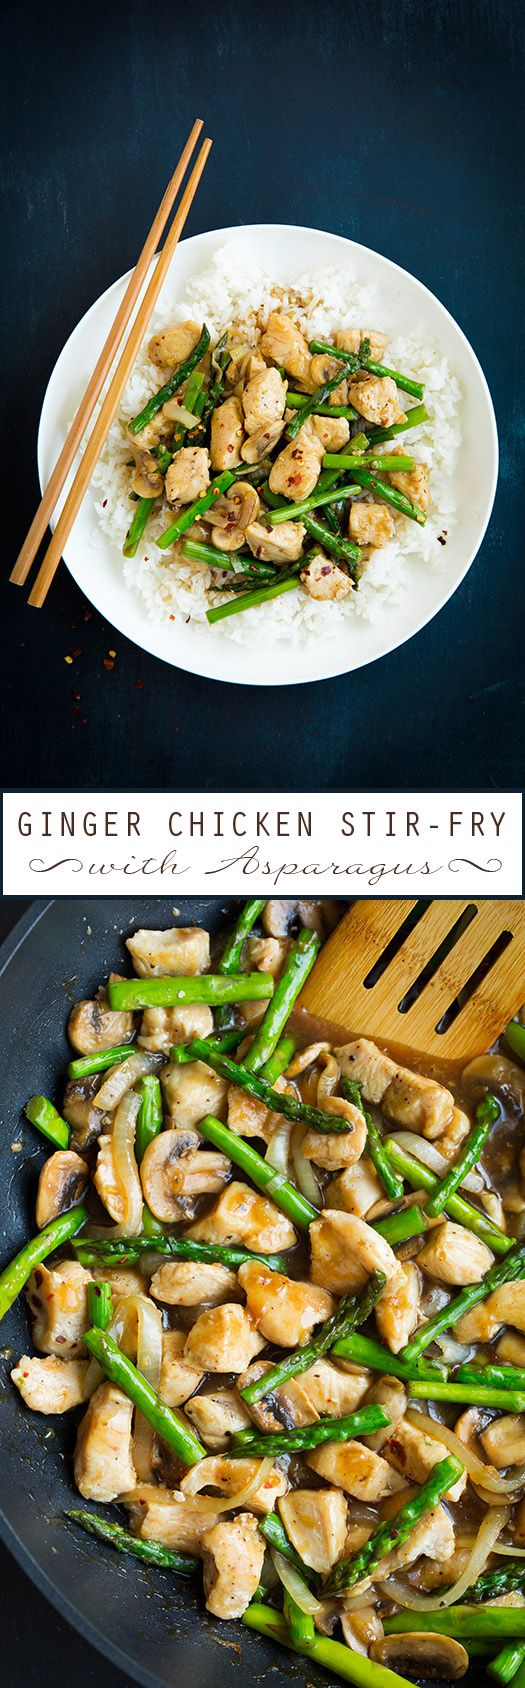 Ginger Chicken Stir-Fry with Asparagus - Cooking Classy